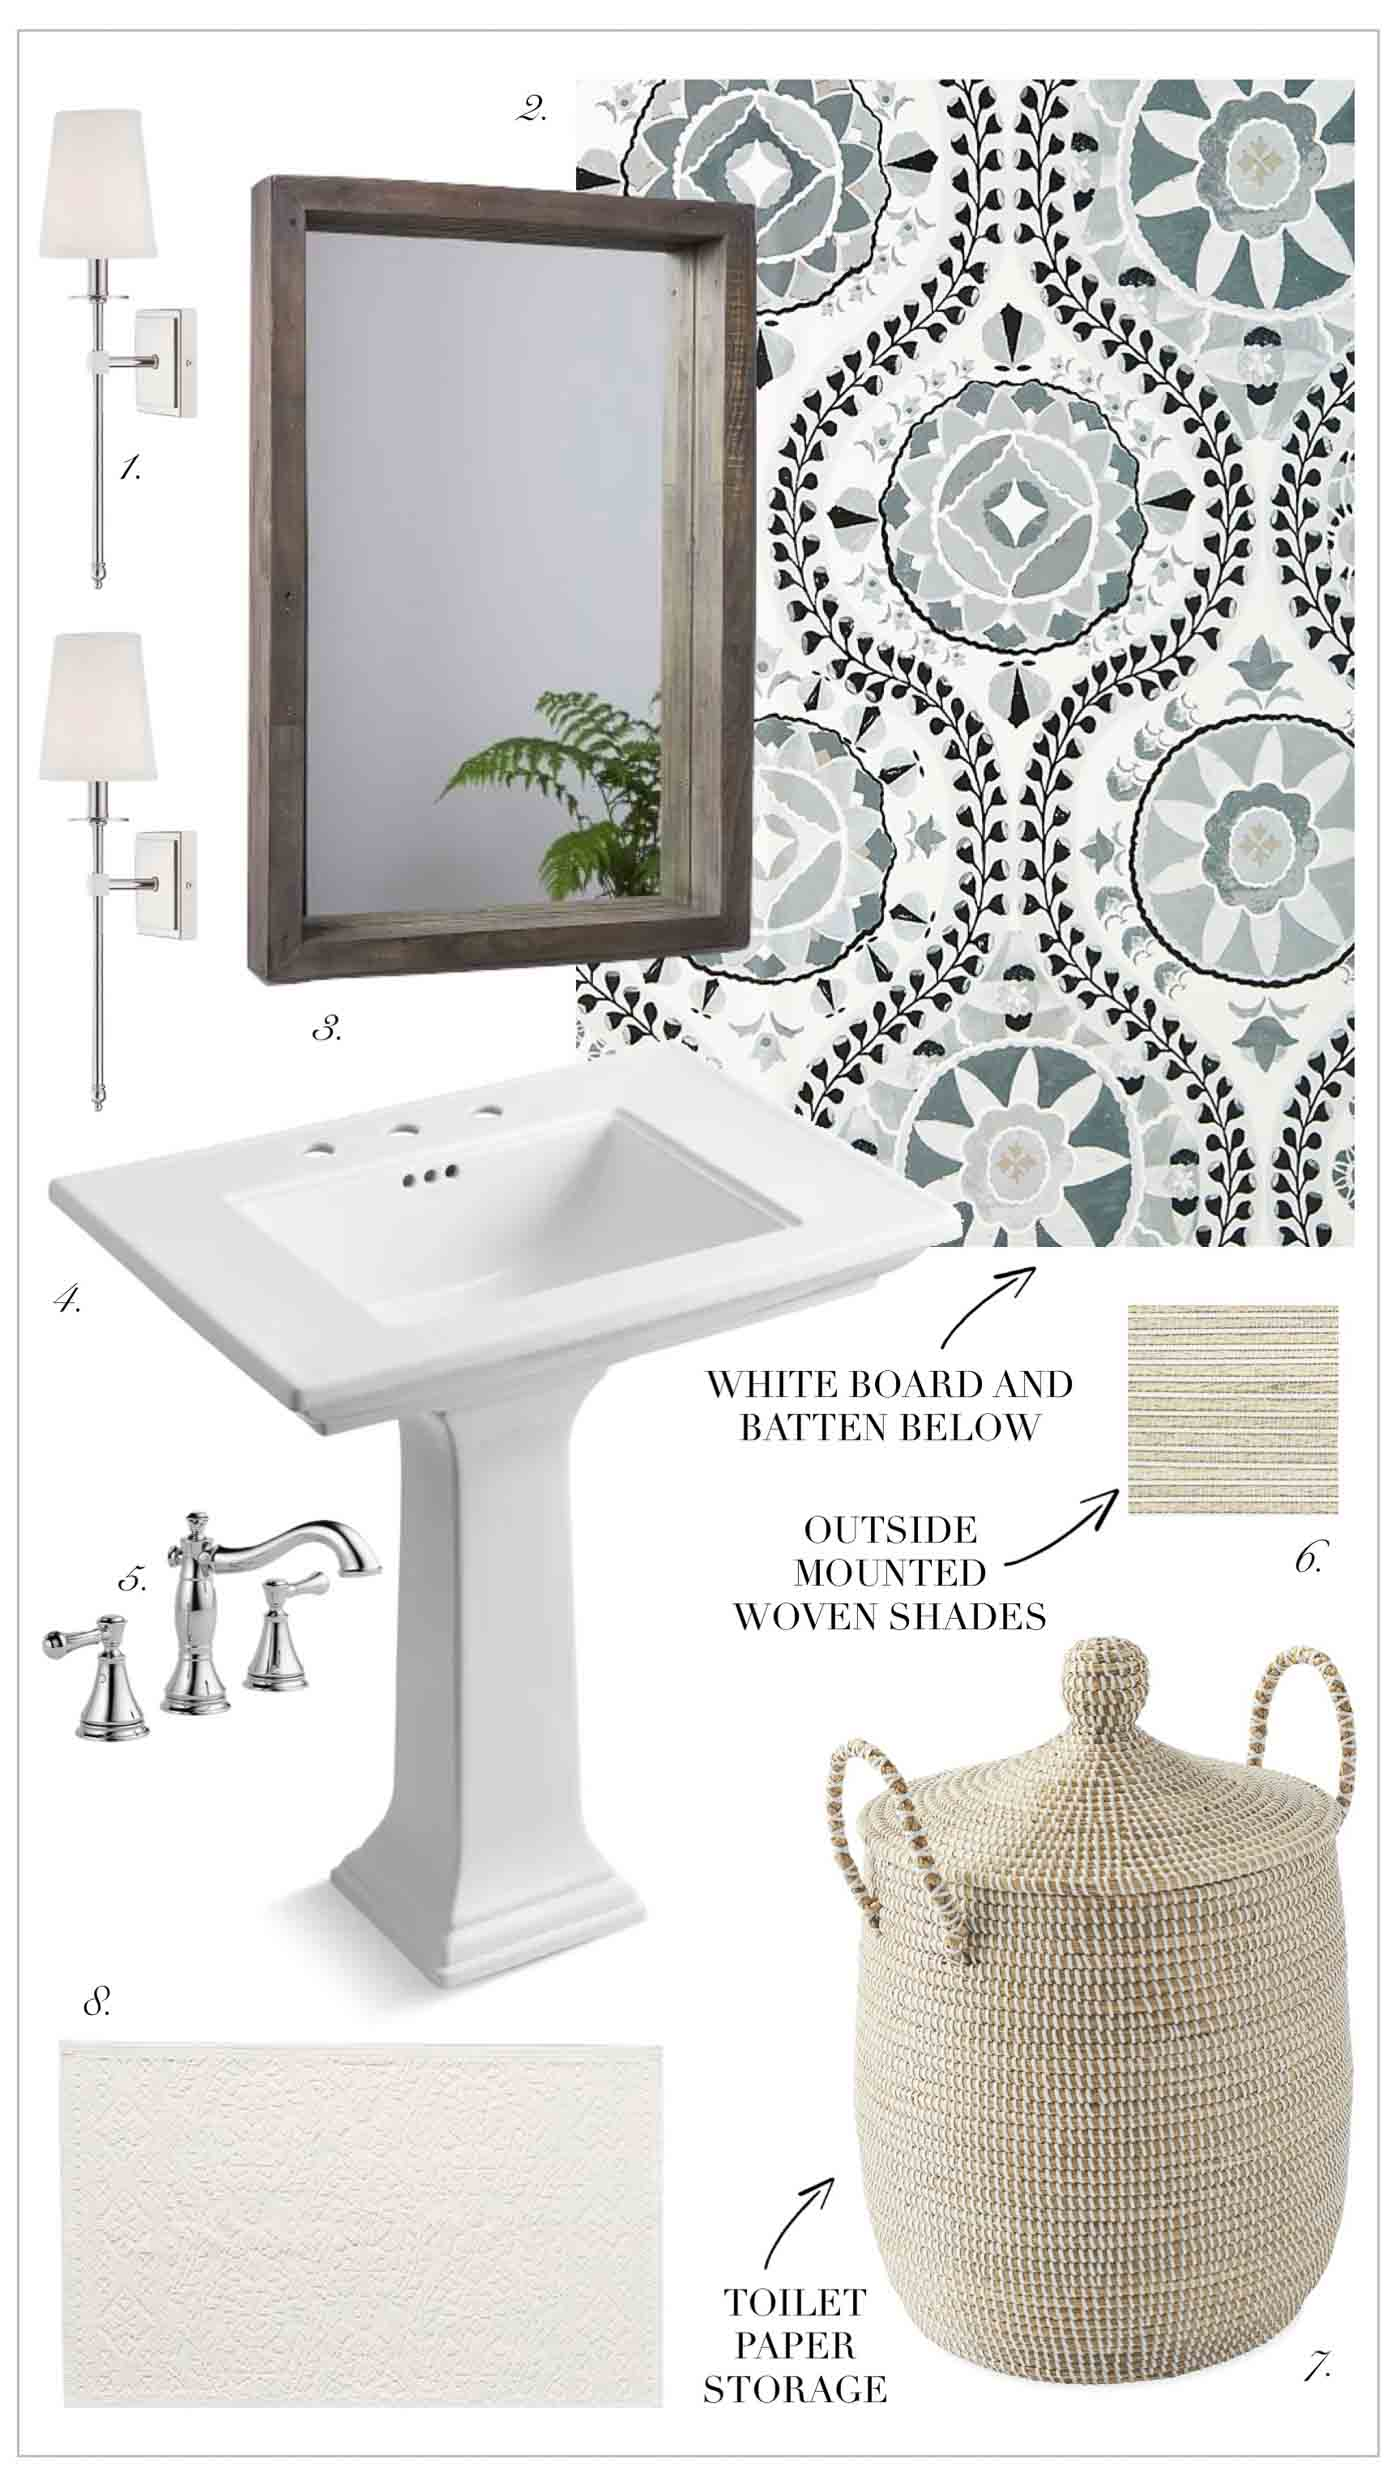 Four Potential Powder Room Design Ideas - Kelley Nan